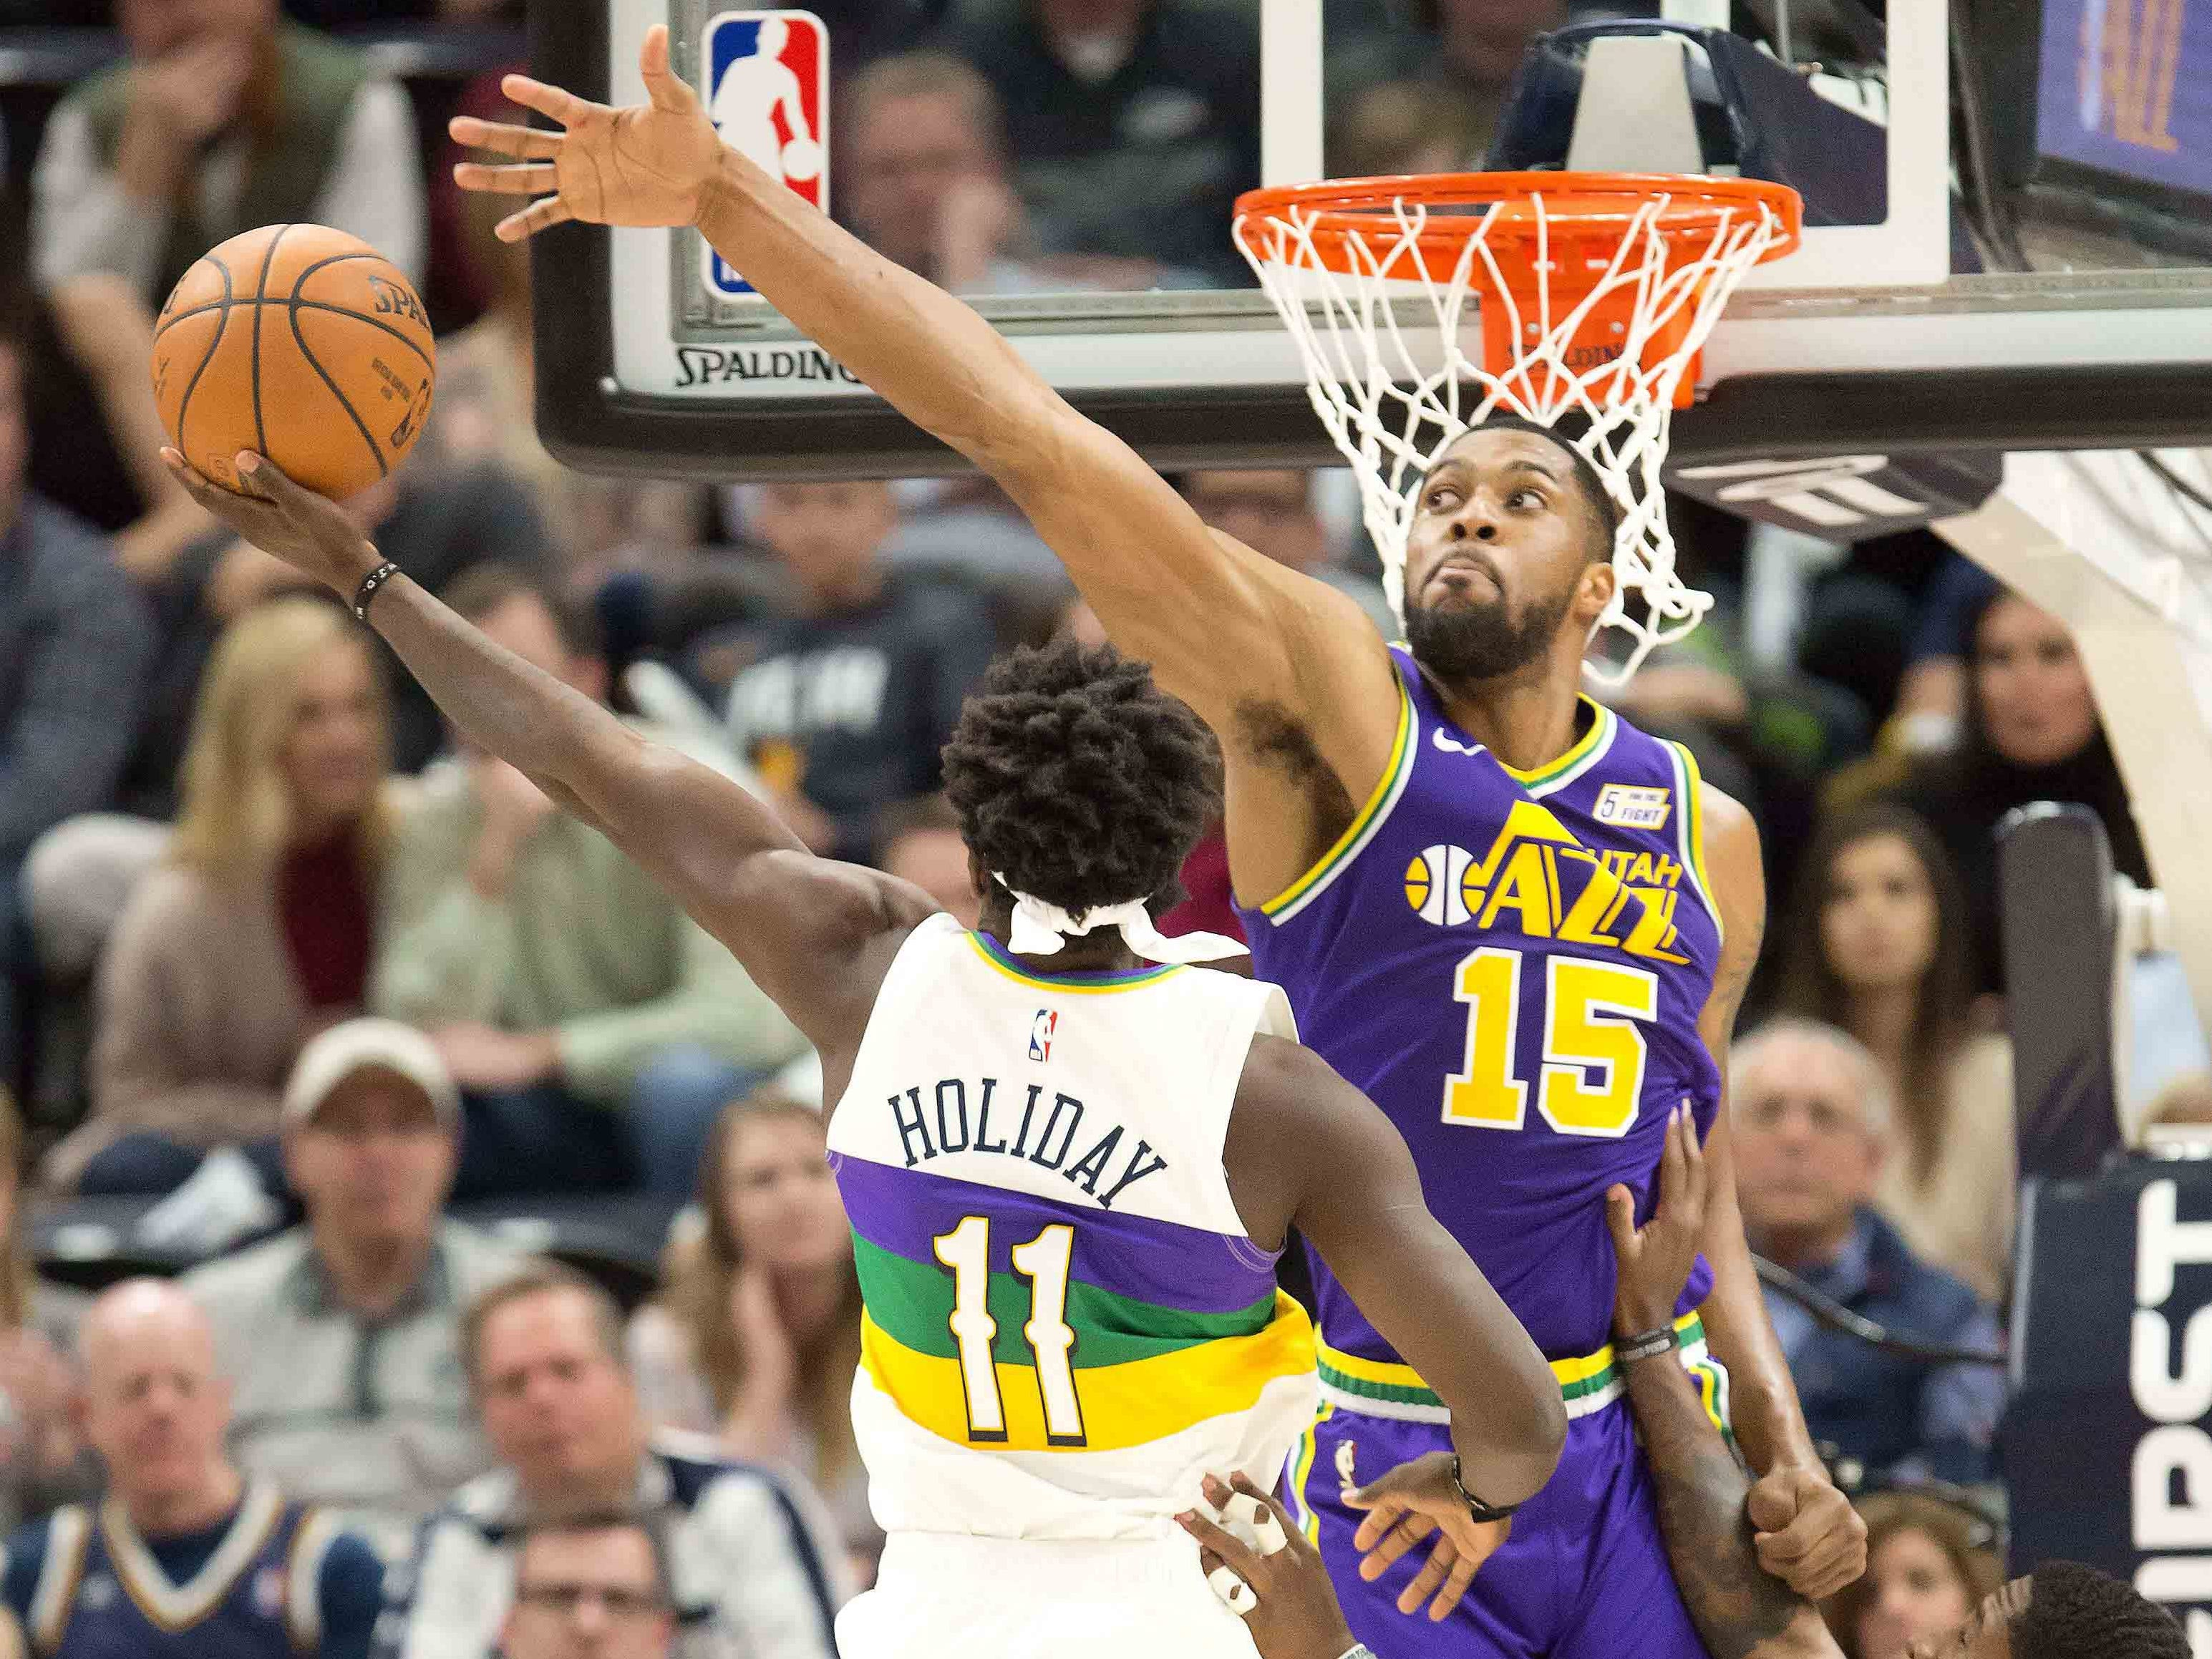 March 4: New Orleans Pelicans guard Jrue Holiday (11) shoots the ball against Utah Jazz forward Derrick Favors (15) during the second half at Vivint Smart Home Arena. The Pelicans won the game, 115-112.